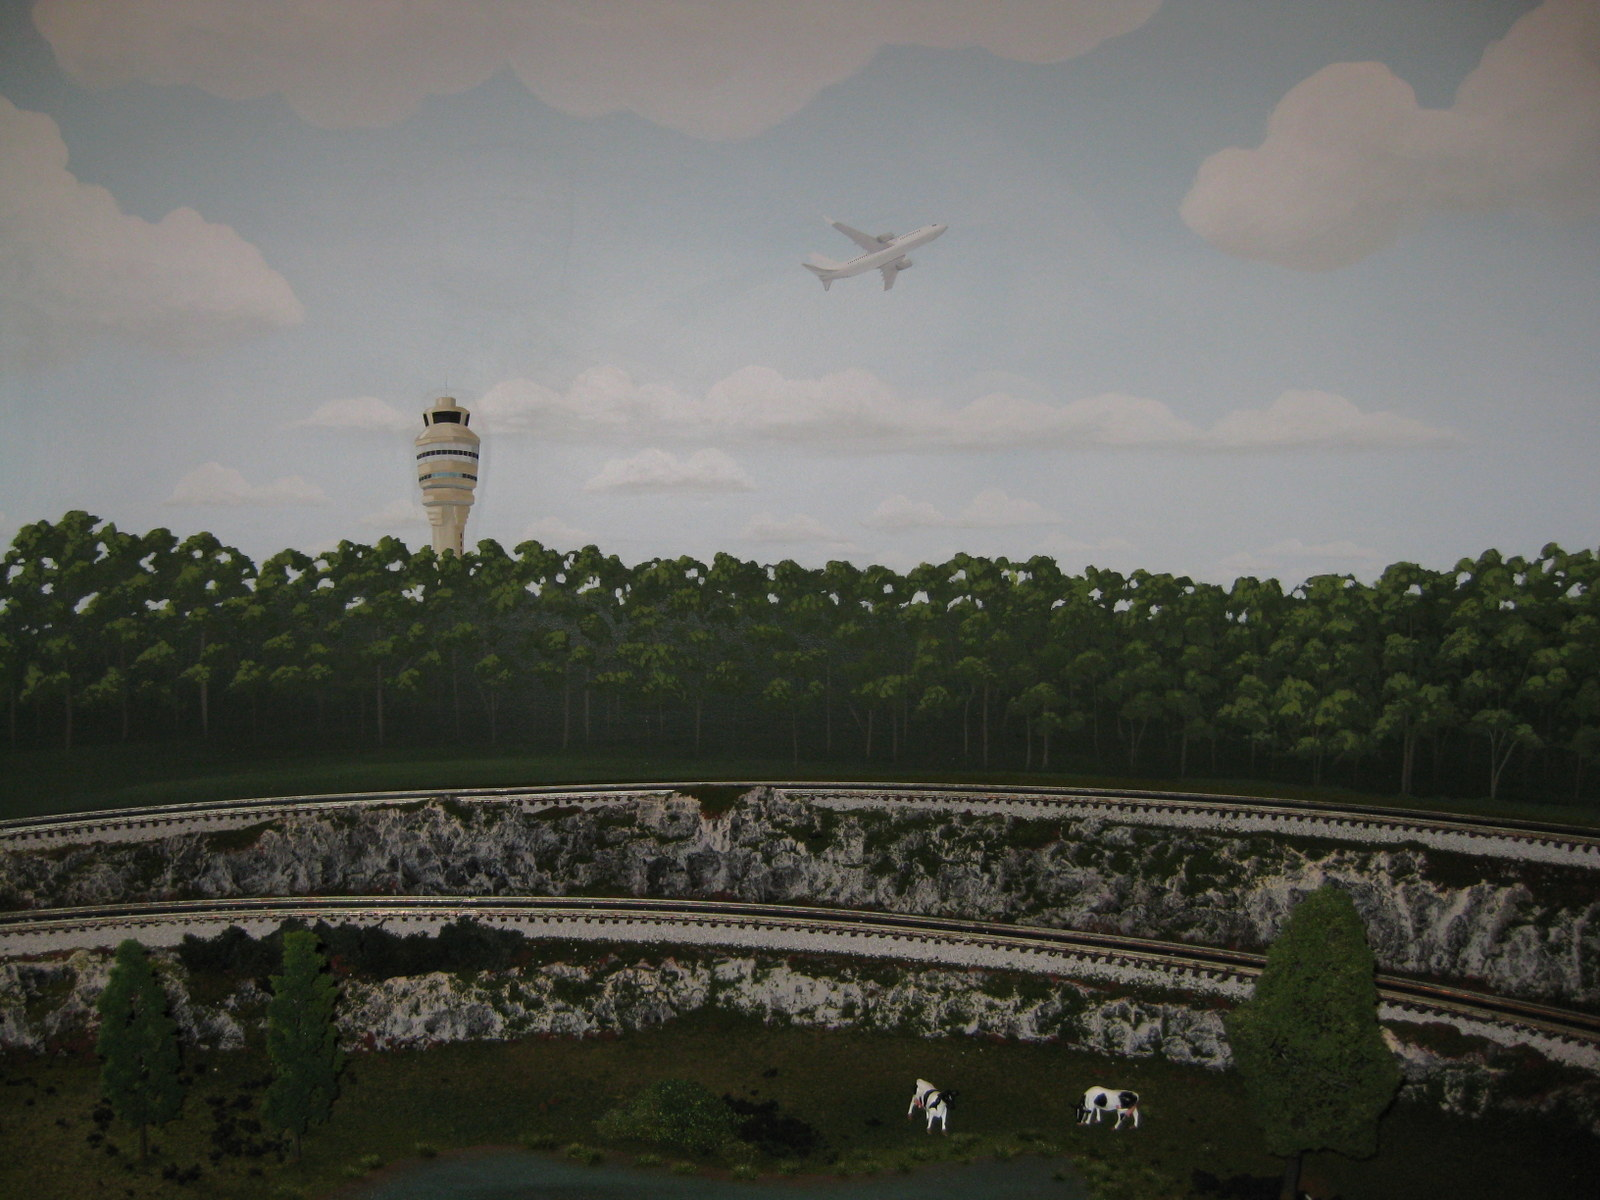 Train Backdrop - Trees and airport